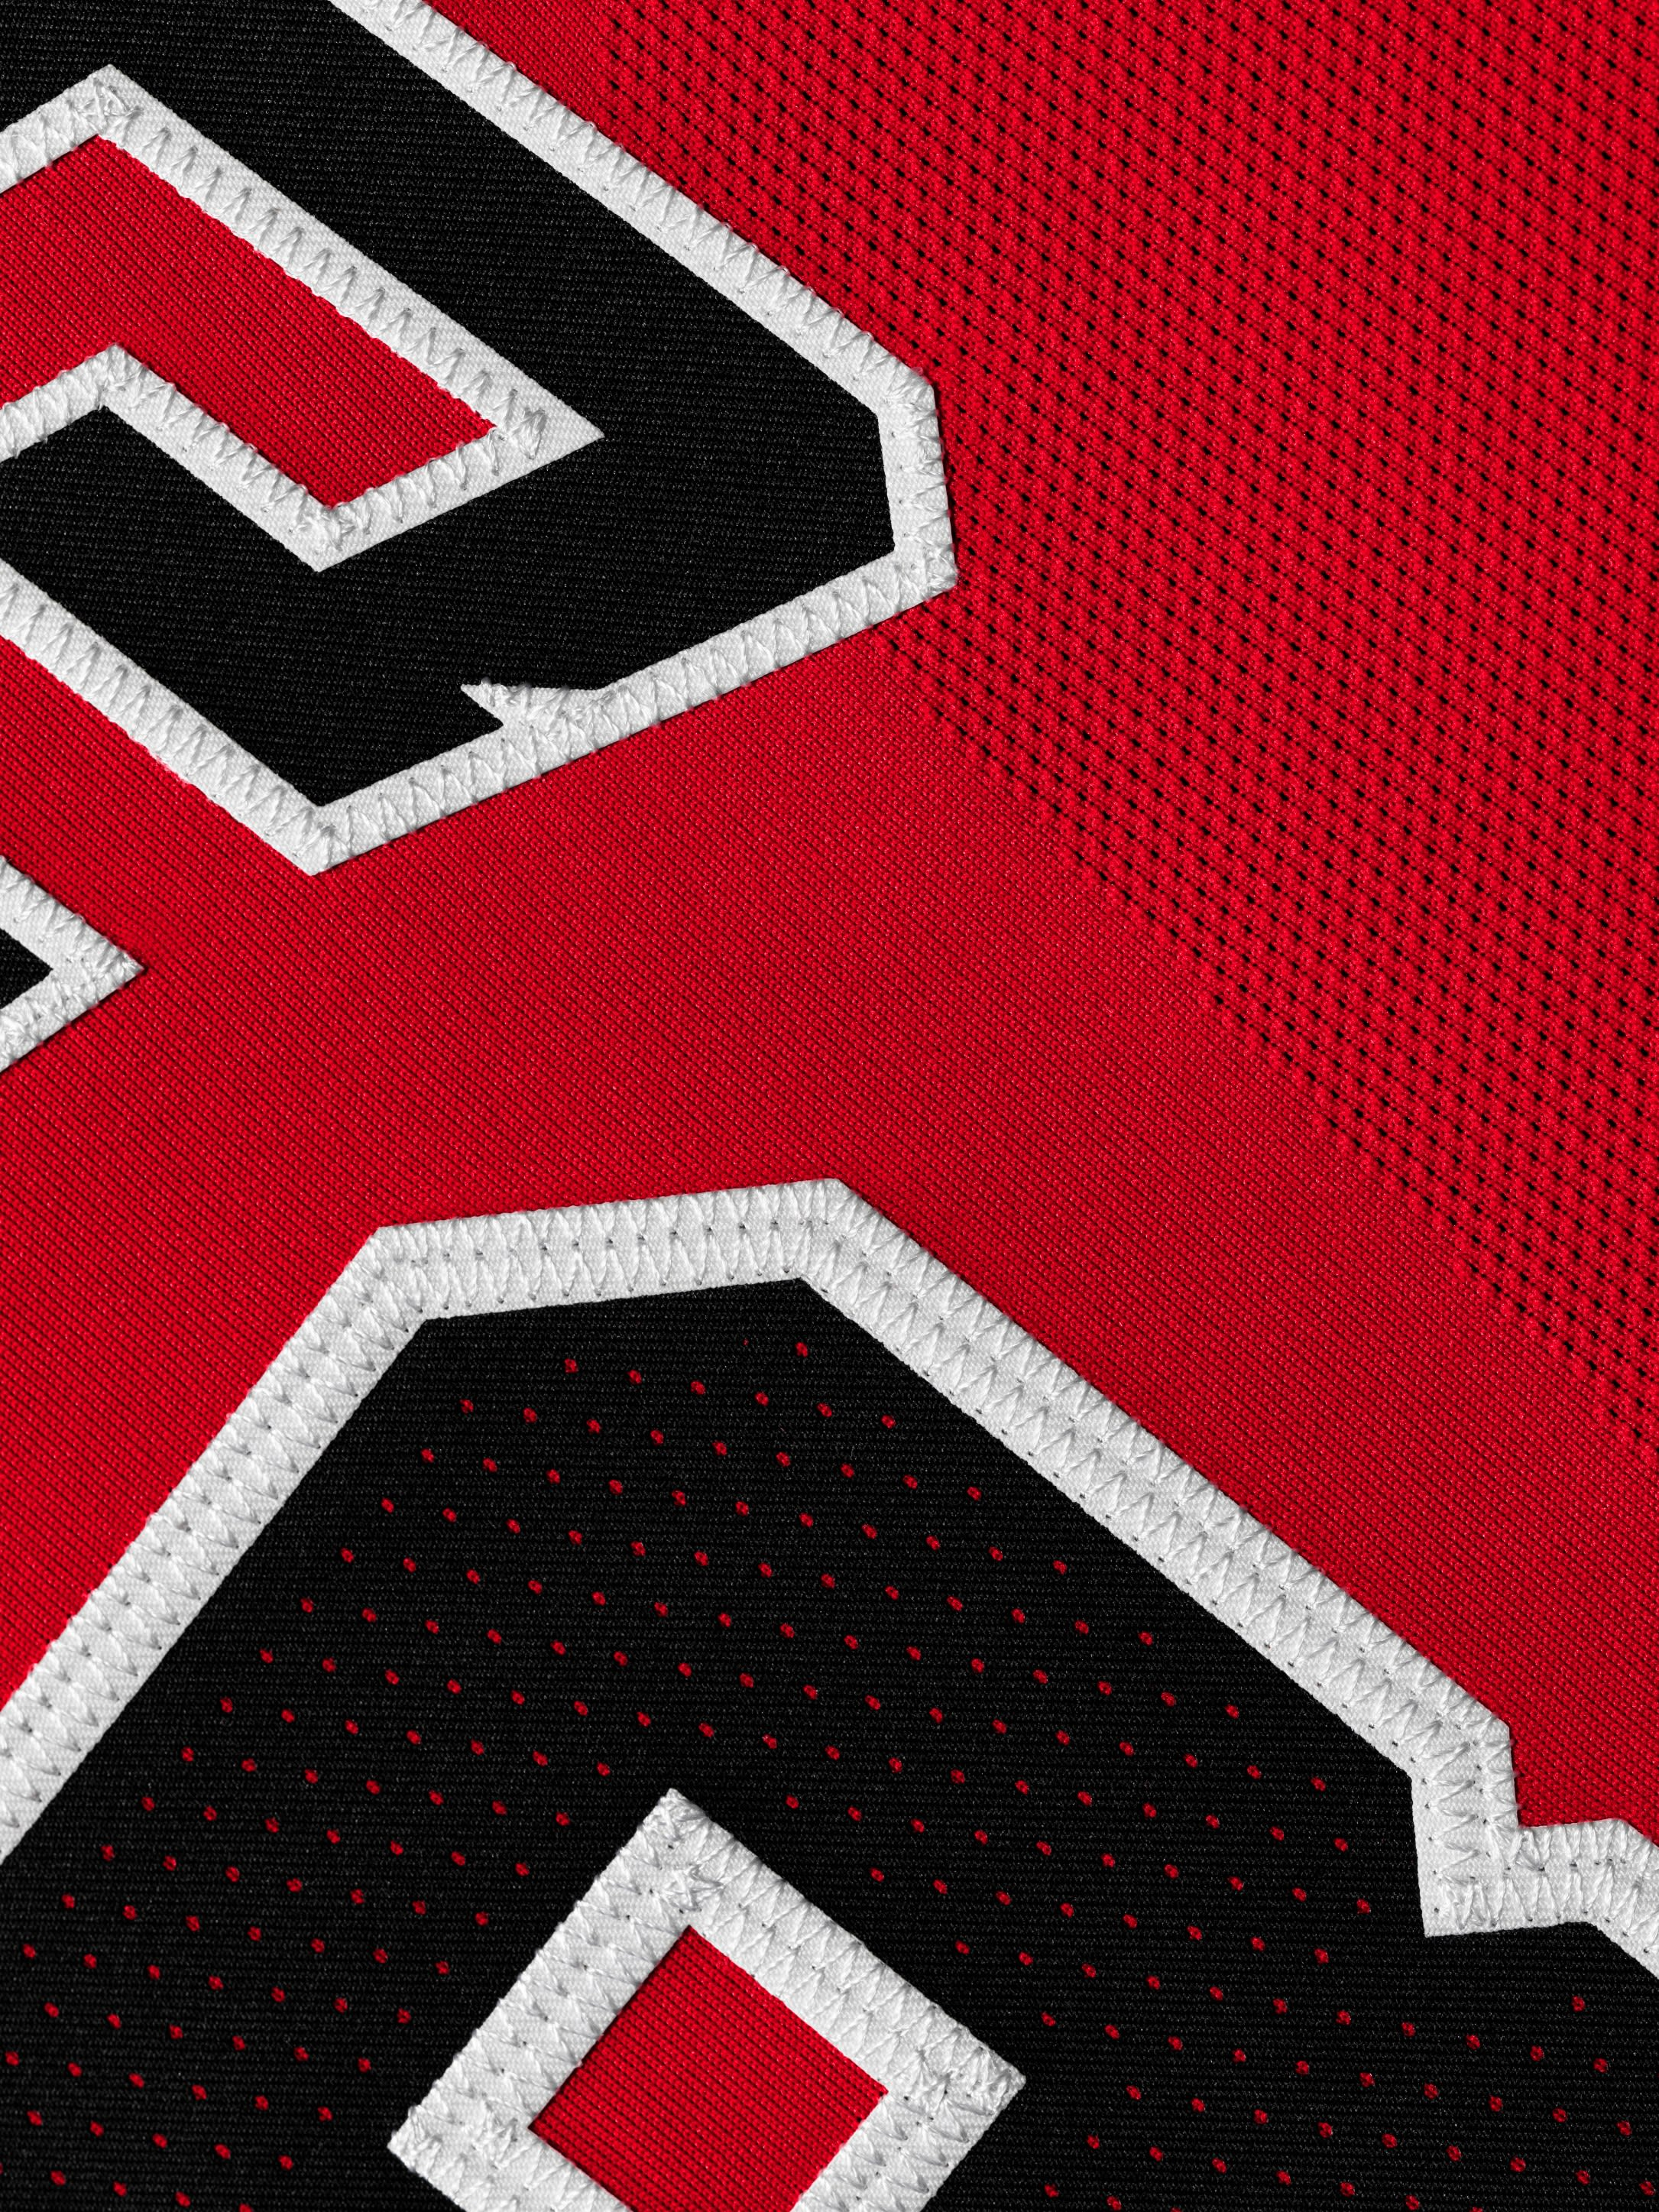 Michael Jordan Chicago Bulls Last Shot Jersey (Authentic Detail)